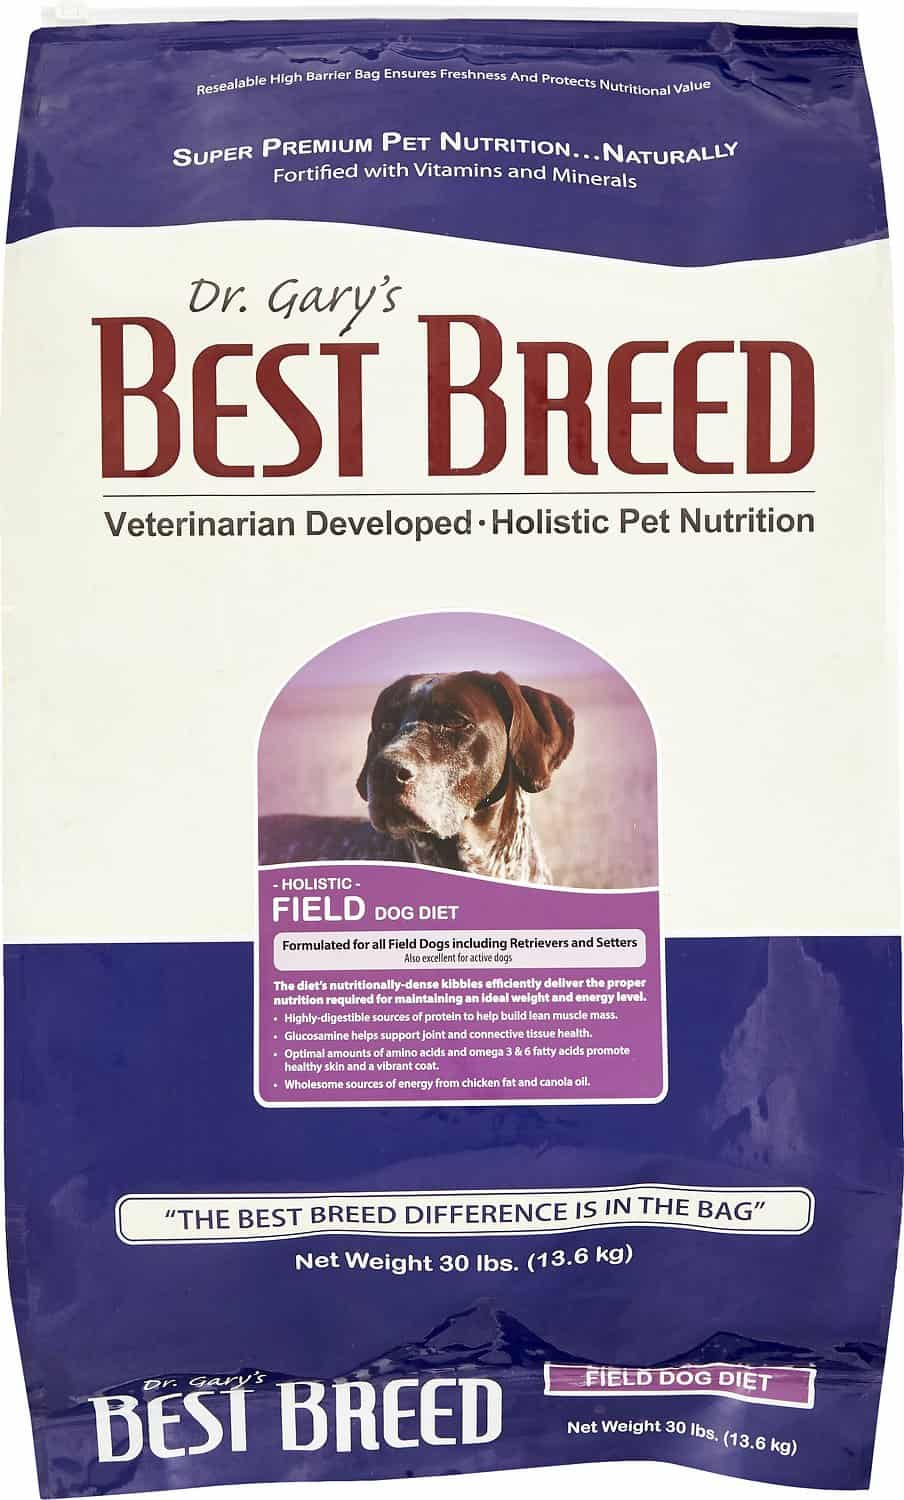 Dr. Gary's Best Breed Dog Food Review 2021: Best Holistic Pet Food? 11